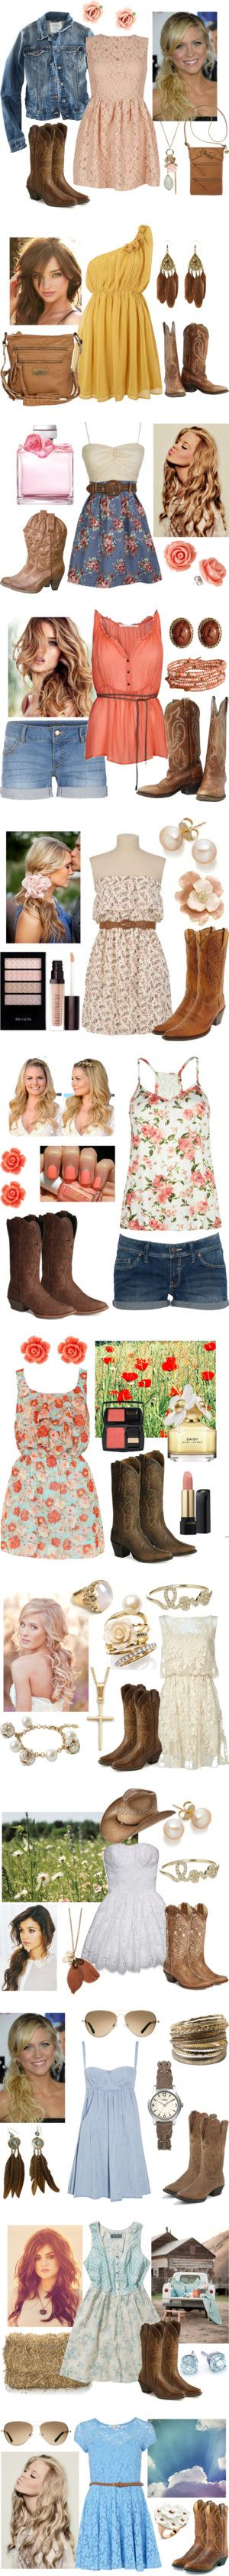 Fashion inspiration for line dancing at the Colorado Cafe!: Cowgirl Boots, Cowboy Boots, Summer Outfit, Country Outfit, Cowgirl Outfit, Country Girls, Cute Outfit, Cowboys Boots, Boots Outfit